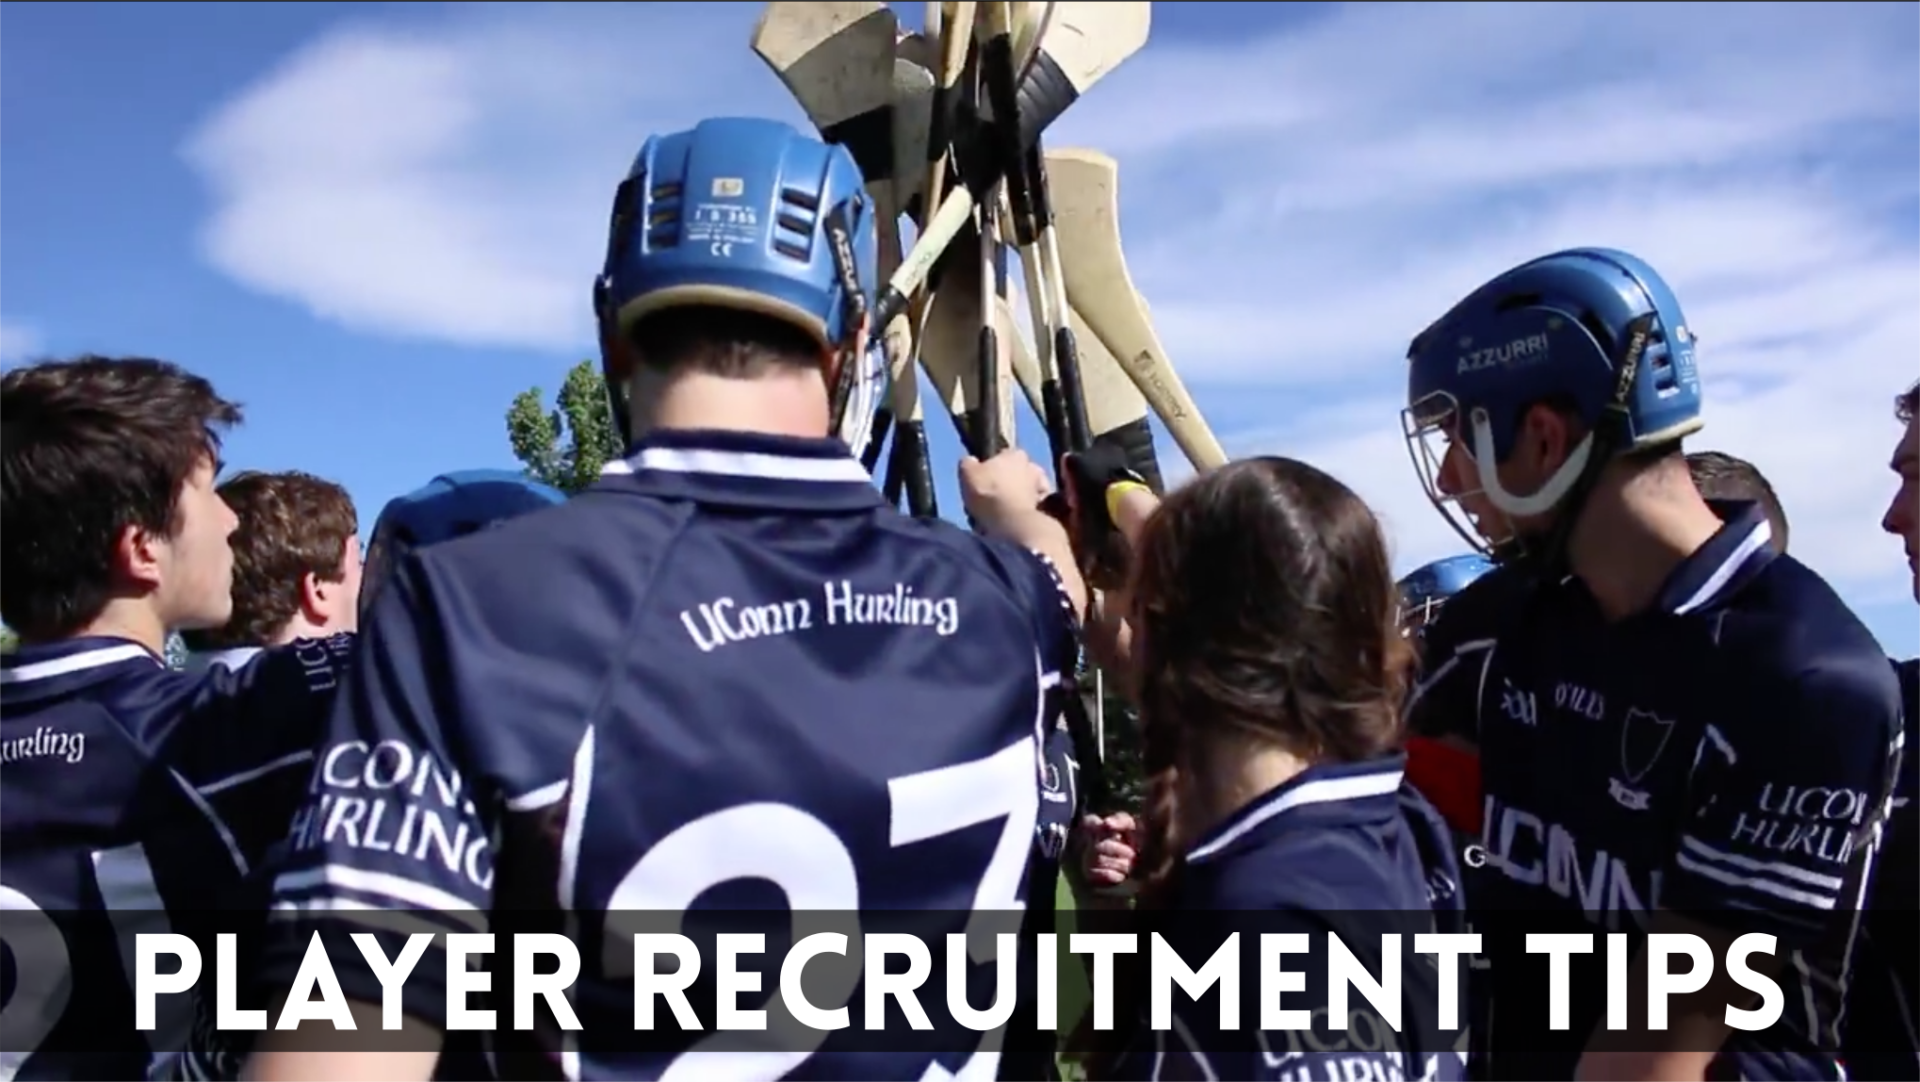 How To Recruit Players For Hurling Clubs Abroad